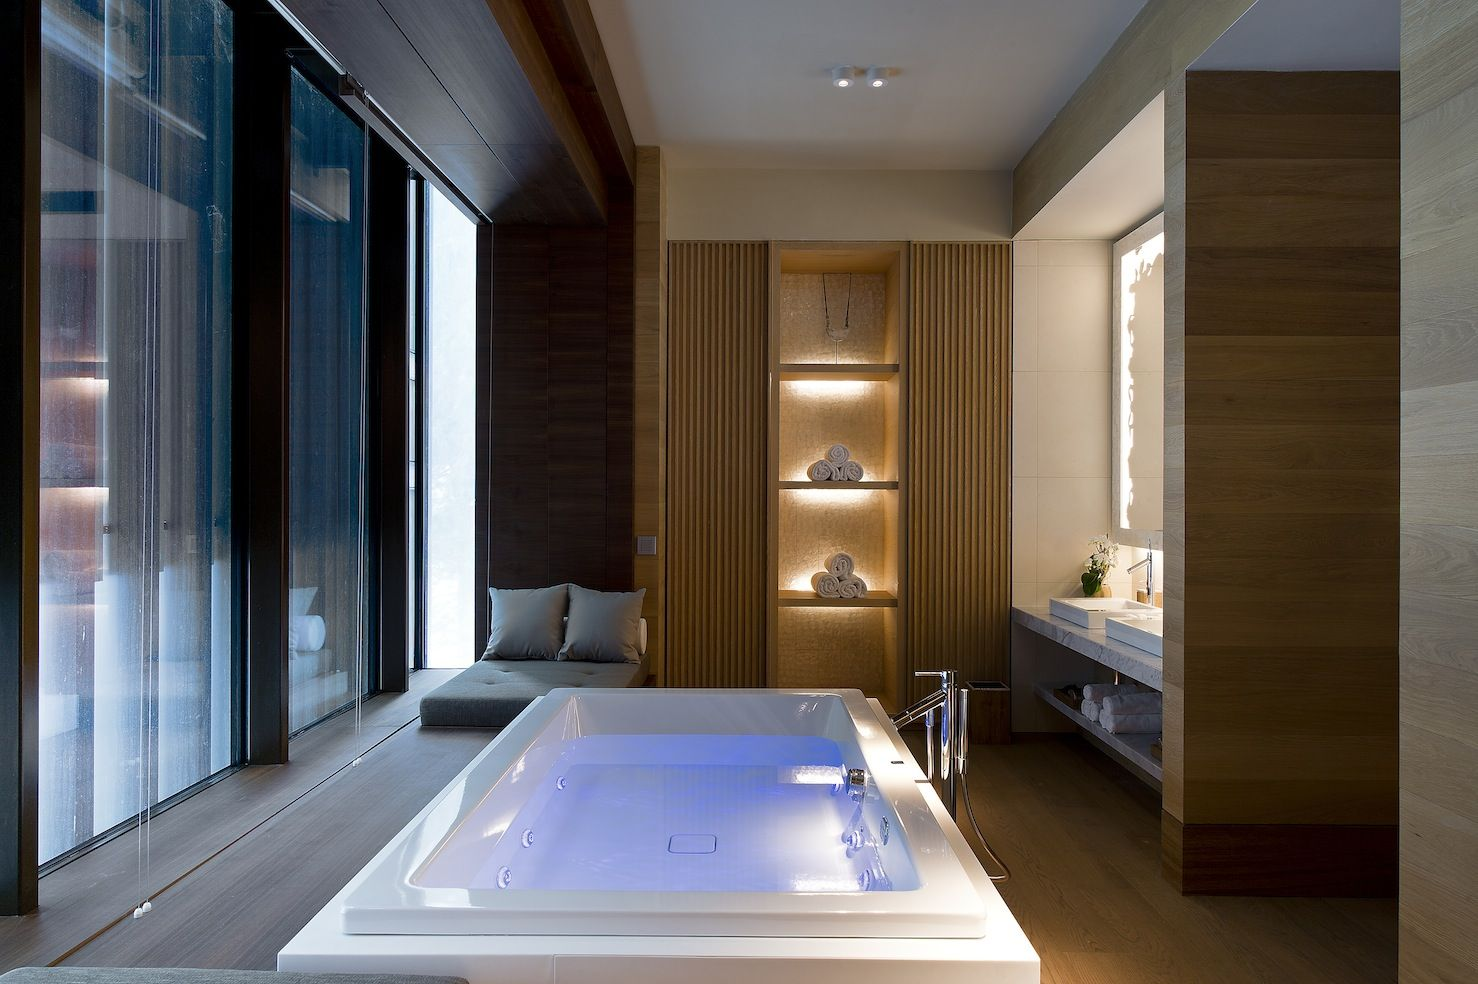 Luxushotel Badezimmer Spa Suite Bathroom At The Chedi Andermatt Swiss Alps